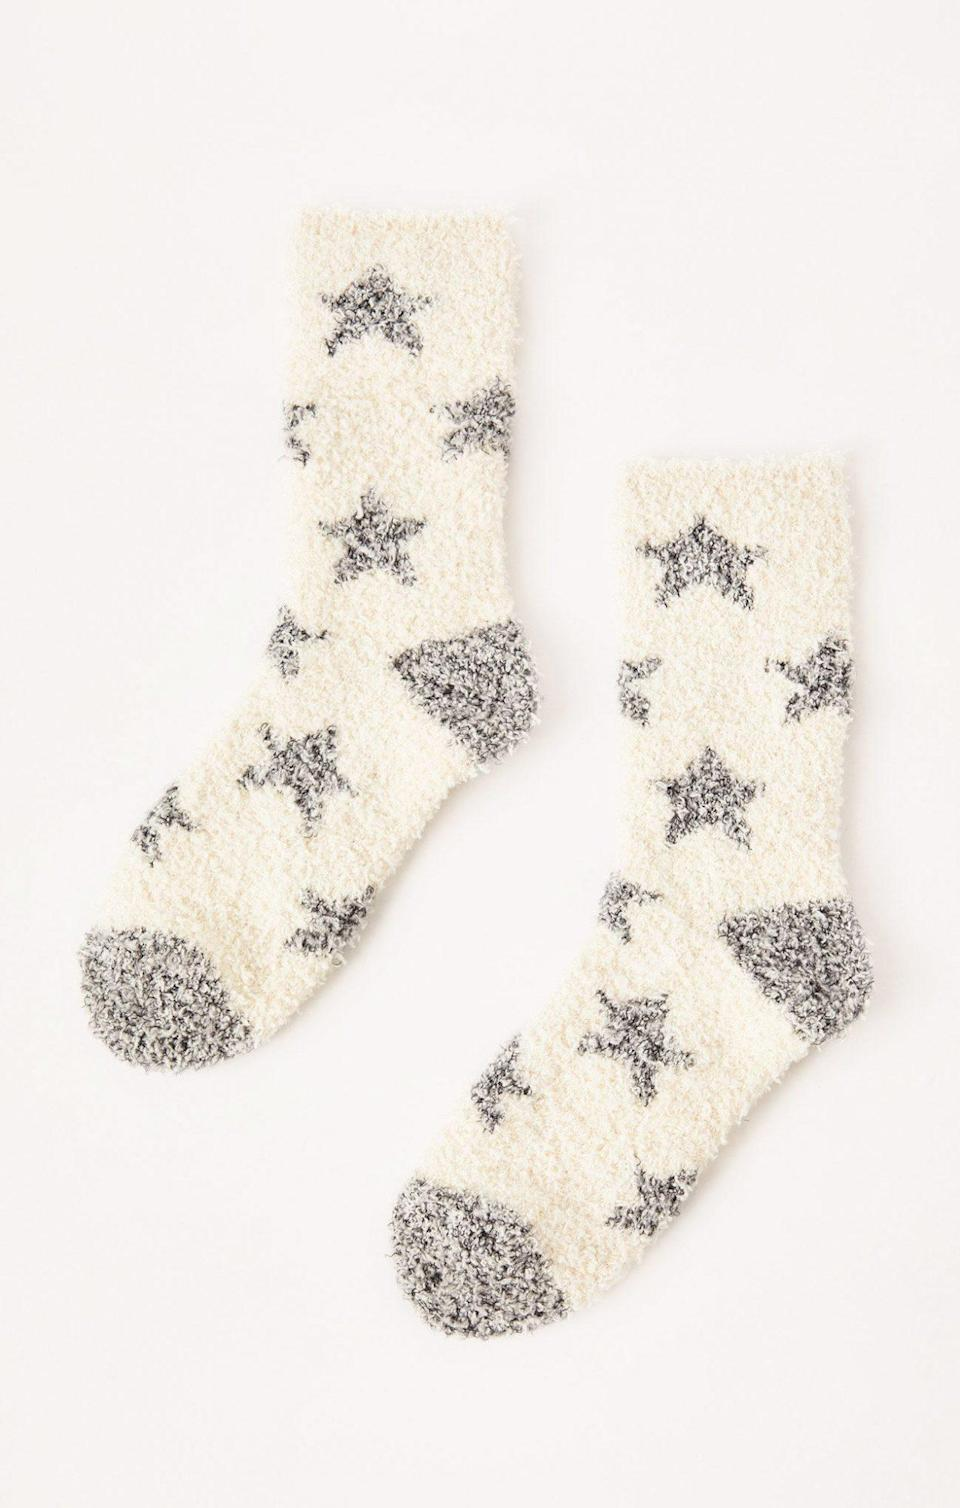 """<p>Trust us: Fuzzy socks are the ultimate crowd-pleaser. Bring this printed pair to White Elephant, and <i>everyone </i>will want to steal your gift. </p> <p><b>Buy it!</b> Star plush socks, $12; <a href=""""https://zsupplyclothing.com/collections/z-lounge/products/star-plush-socks"""" rel=""""nofollow noopener"""" target=""""_blank"""" data-ylk=""""slk:zsupply.com"""" class=""""link rapid-noclick-resp"""">zsupply.com</a></p>"""